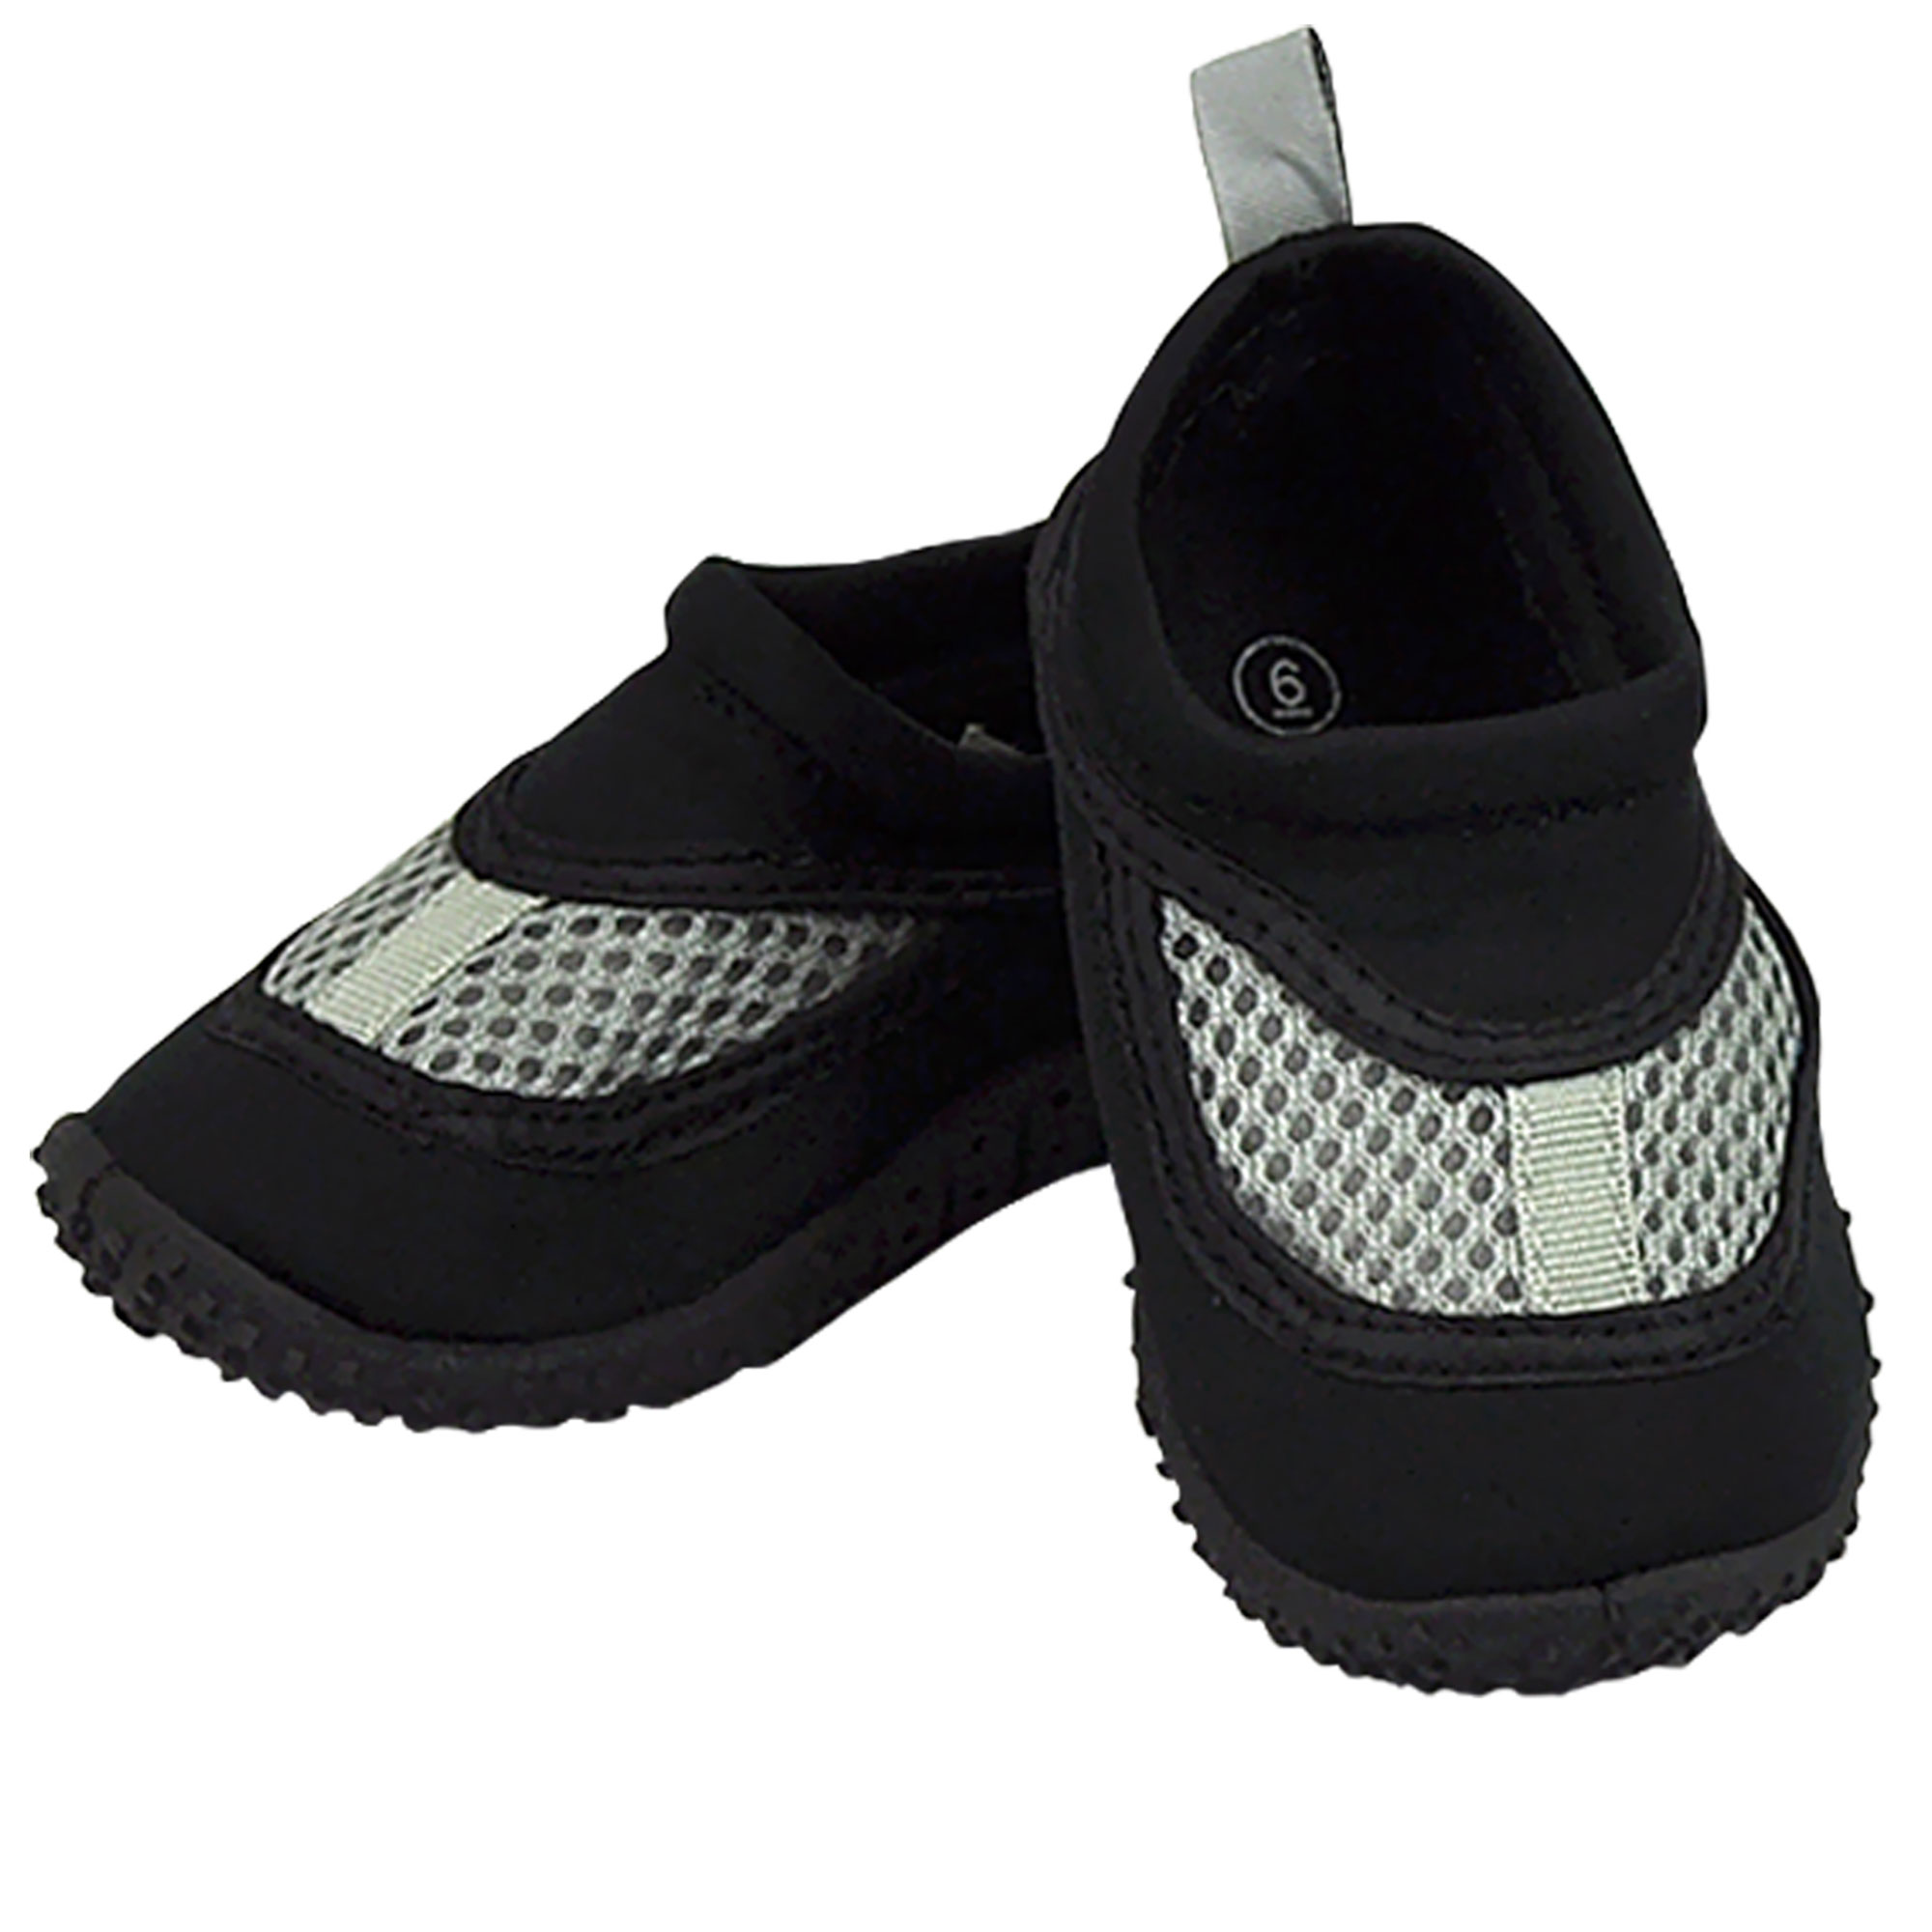 Iplay Uni Boys or Girls Sand and Water Swim Shoes Kids